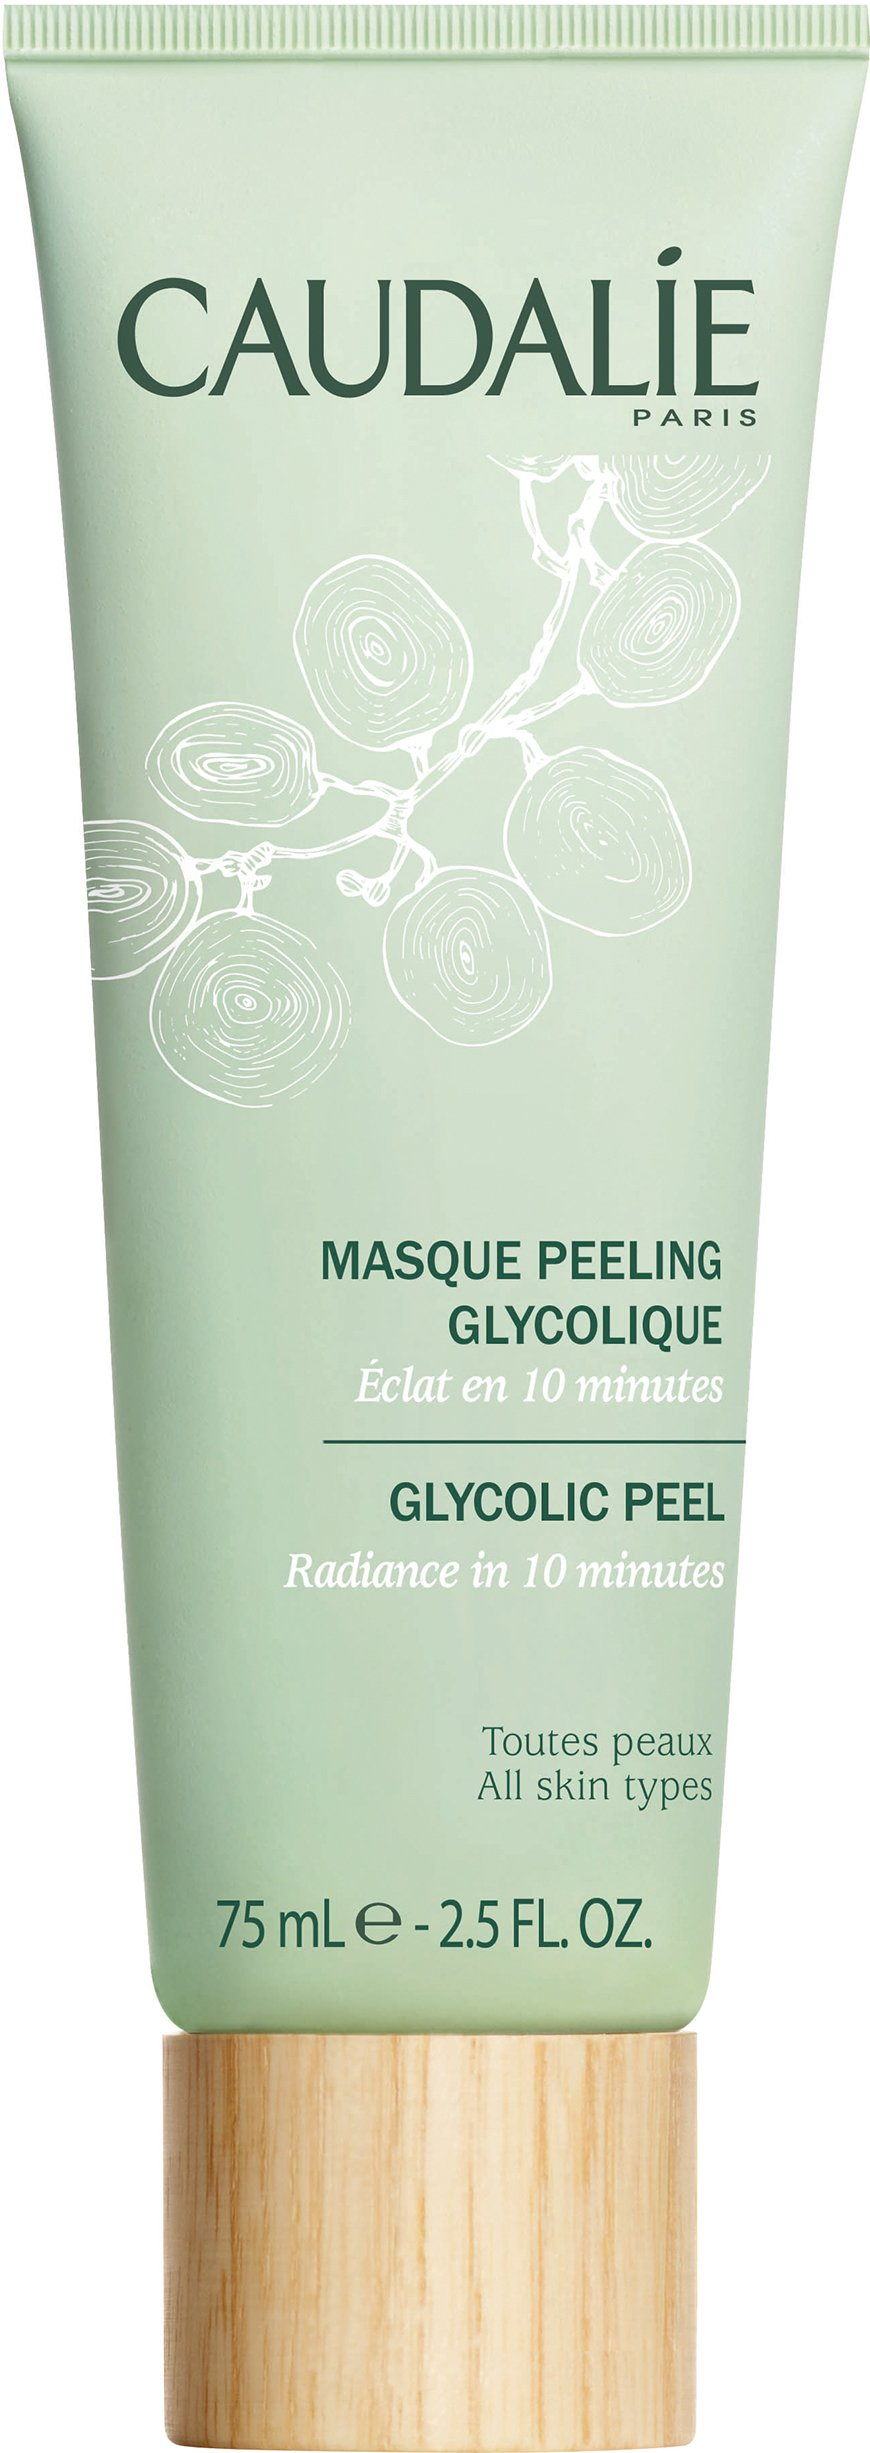 Caudalie - Glycolic Peel Mask 75 ml